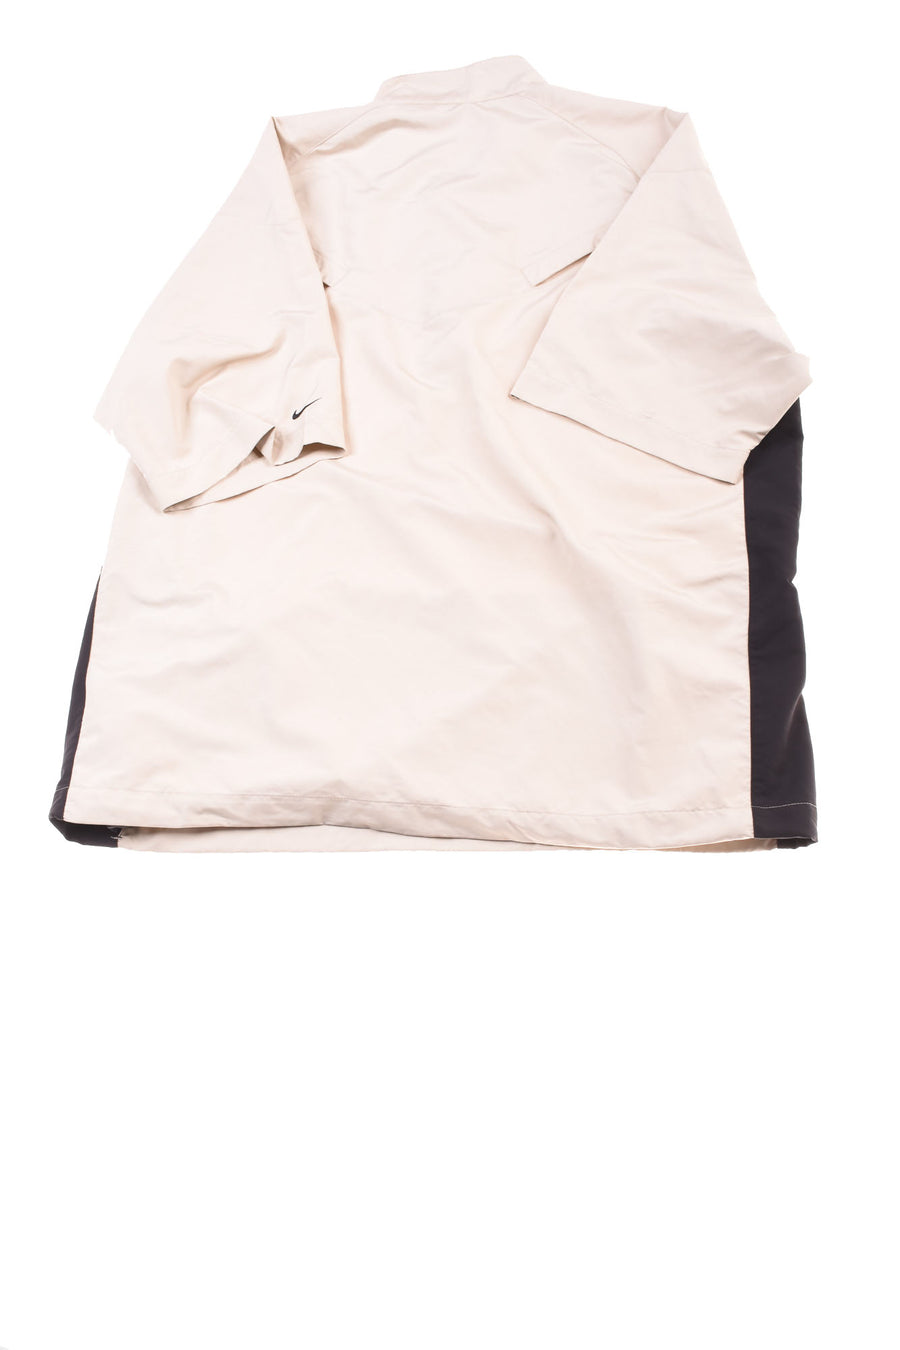 USED Nike Golf Men's Plus Golf Jacket XX-Large Tan